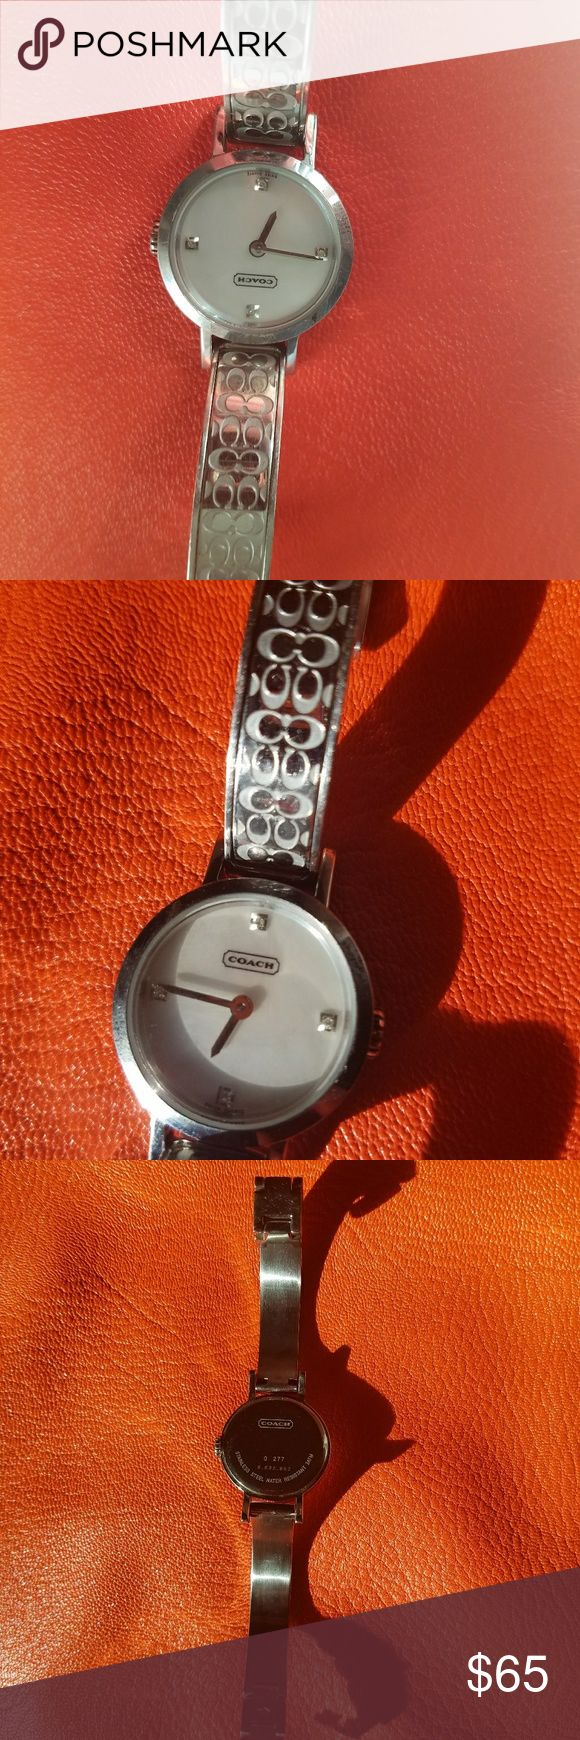 Coach womens watch Very cute Coach watch. I had it fitted to my smaller wrist . I took out a few of the chains links. I have the extra chain links. Battery needs to be replaced. Worn for a few months. It has a slight black mark on the left face (rim) of watch.  Please ask questions. Coach Accessories Watches